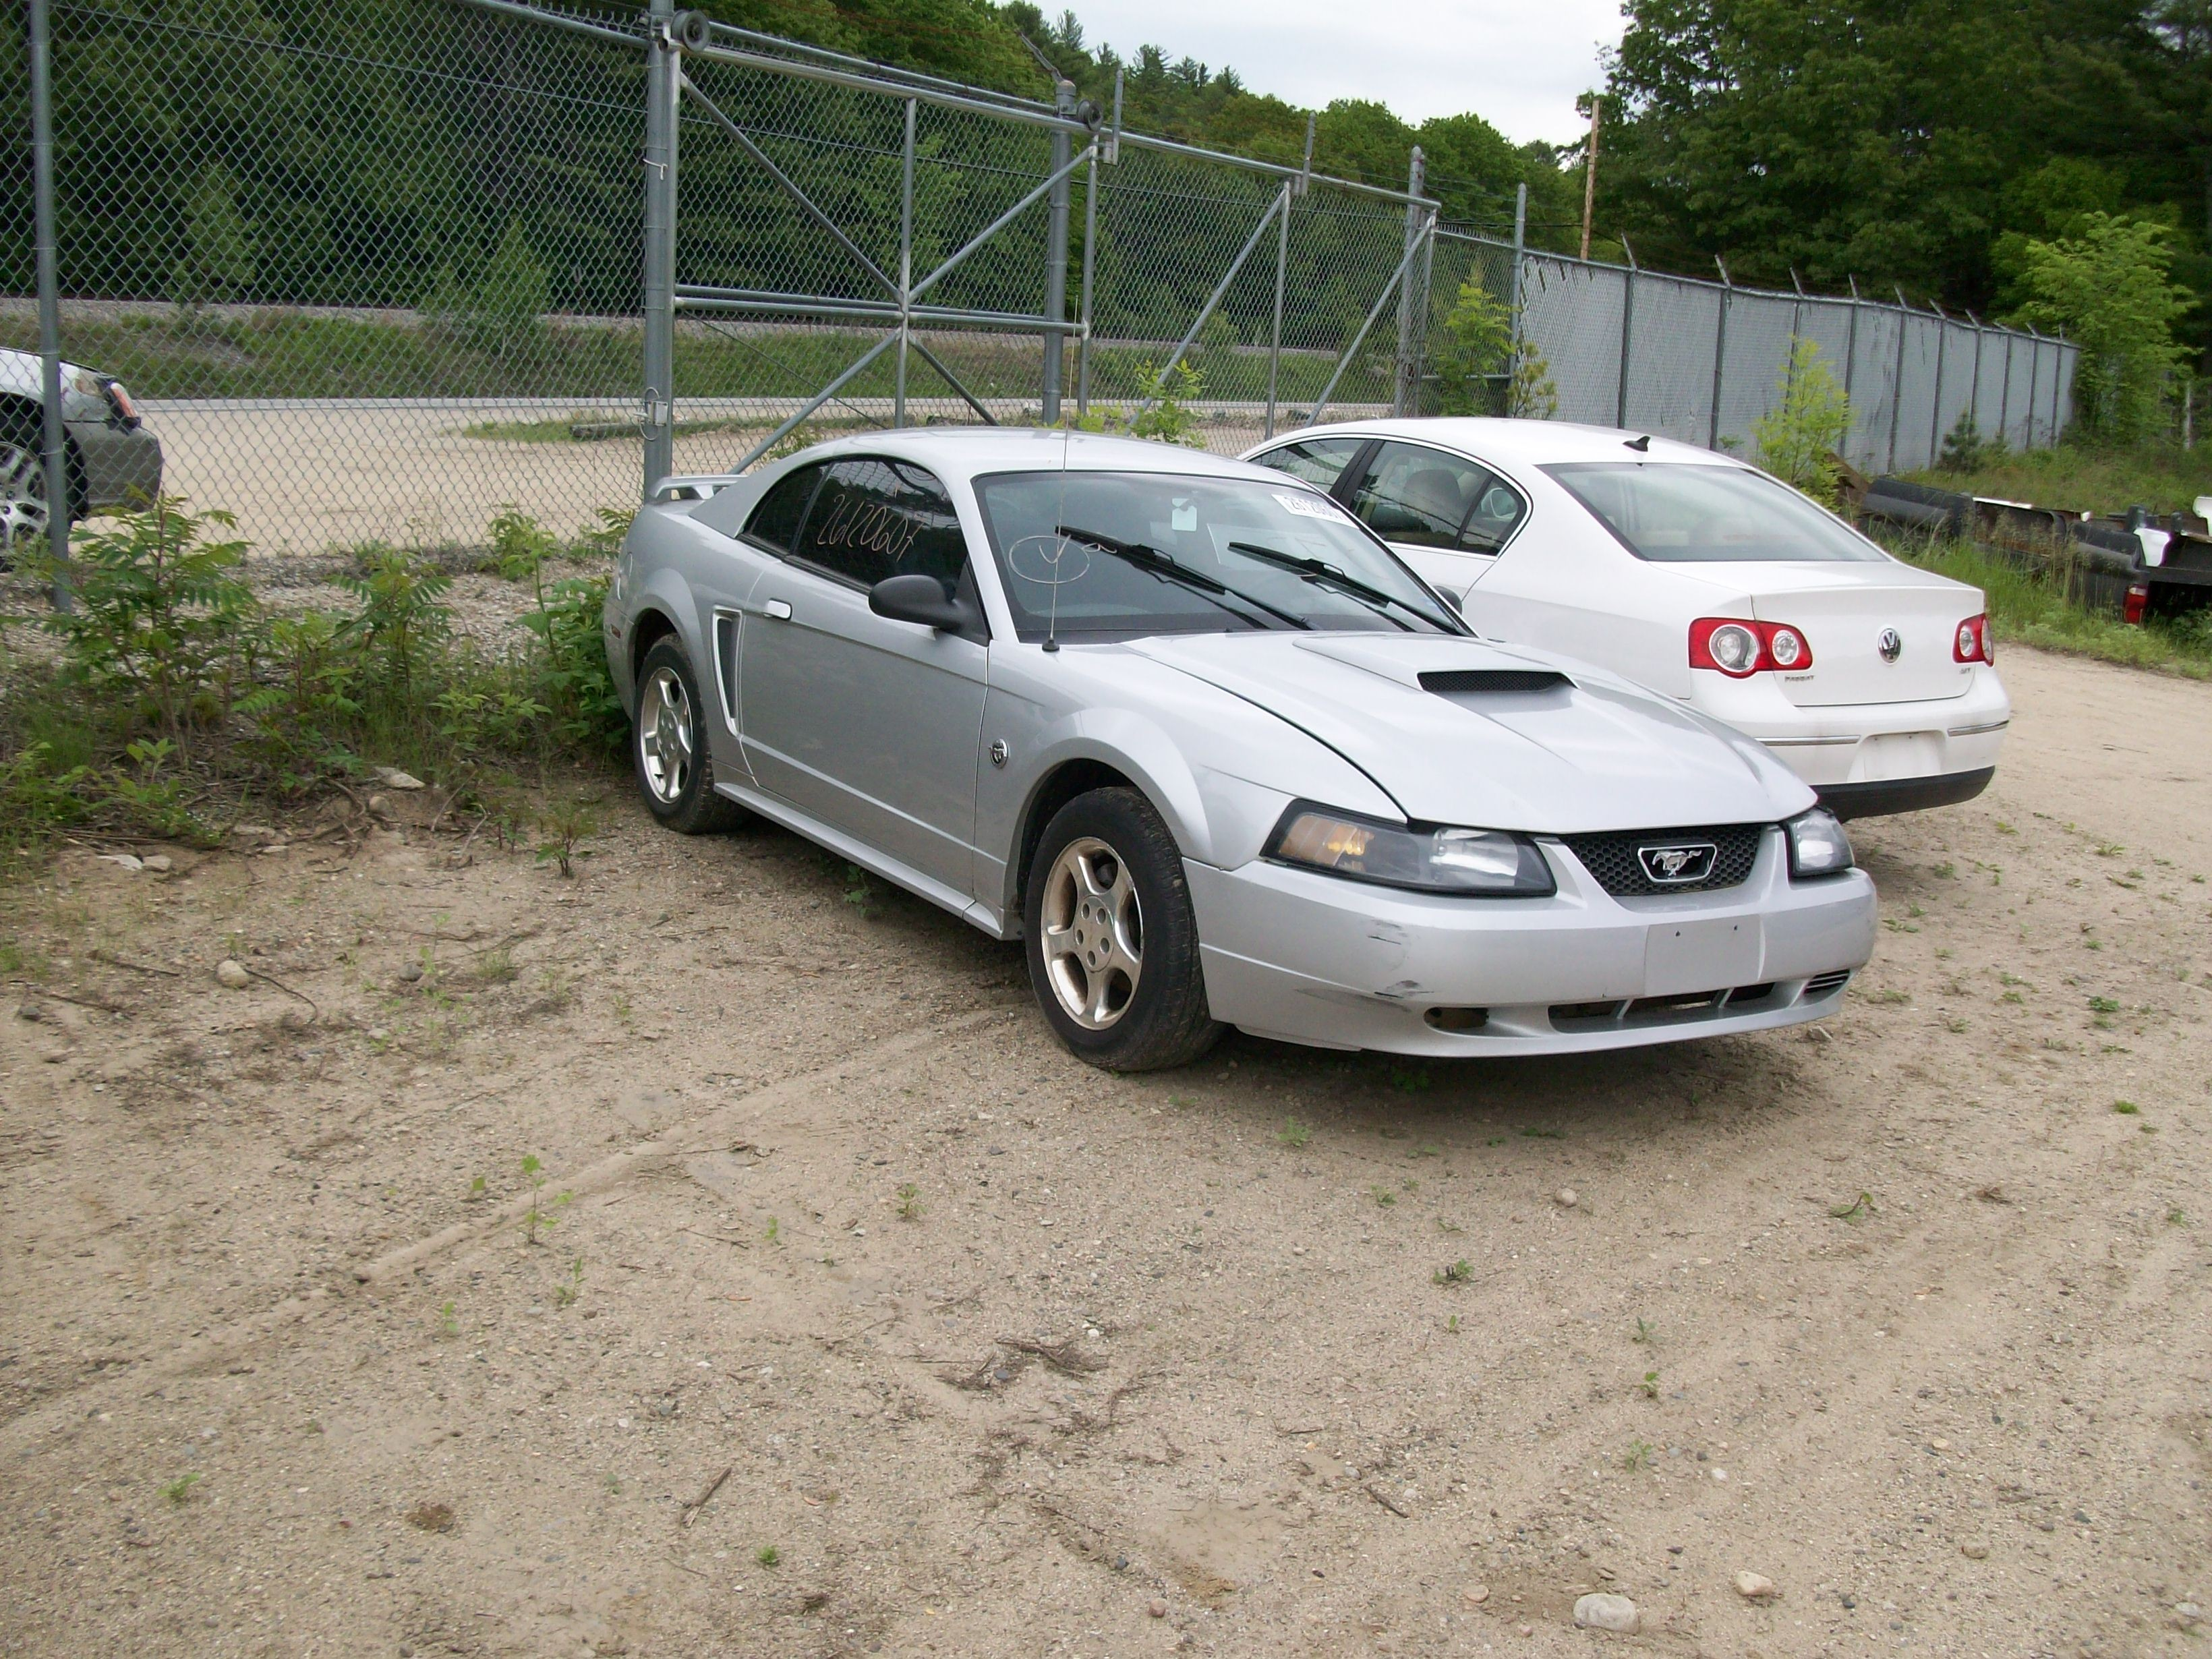 MUSTANGS ONLY AT LASHINS AUTO SALVAGE